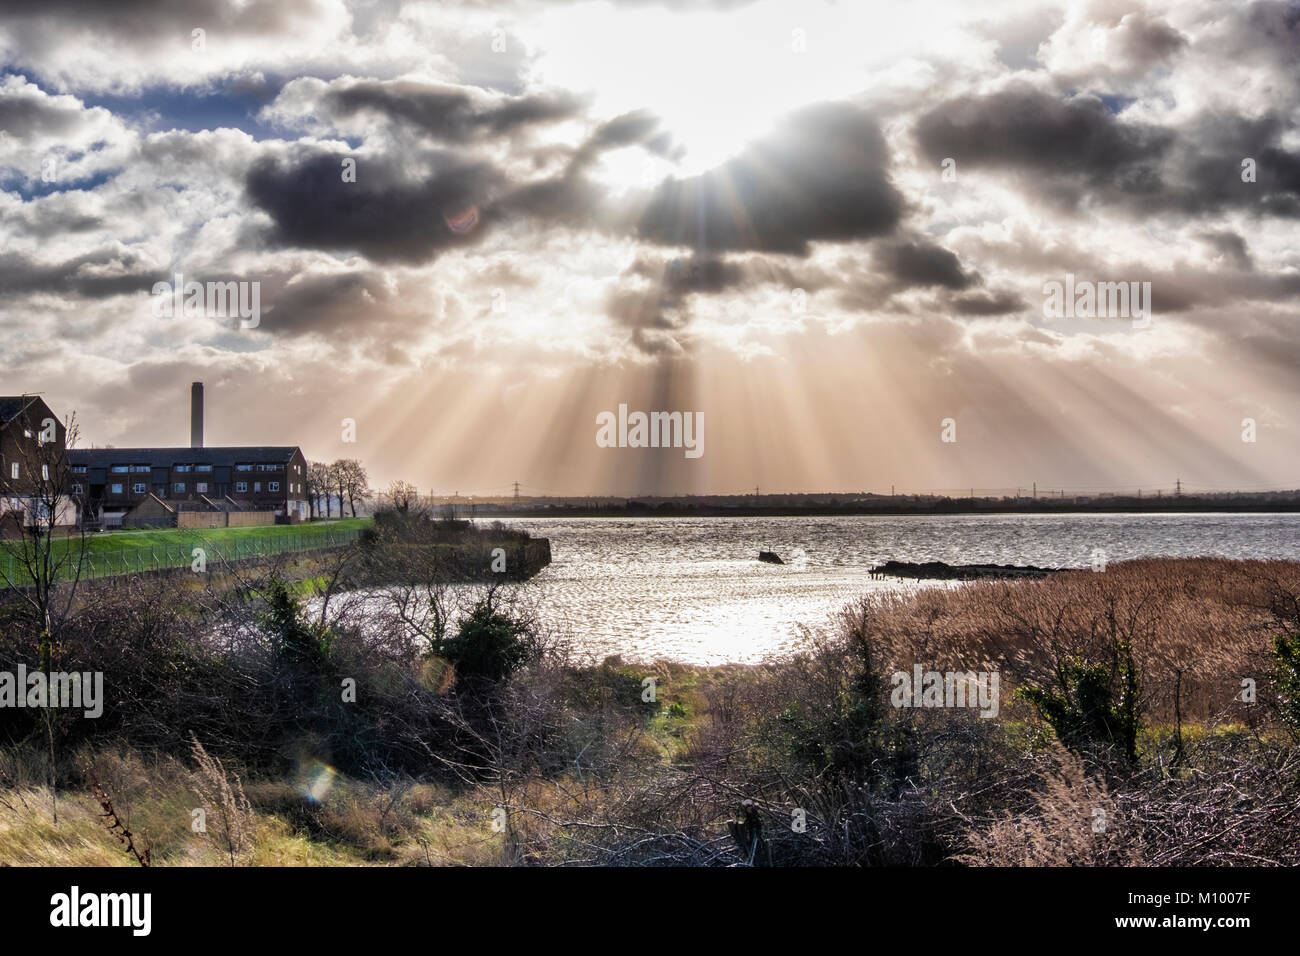 Essex,UK. View from Rainham Marshes RSPB nature reserve next to Thames Estuary in Purfleet,Thames river, clouds - Stock Image